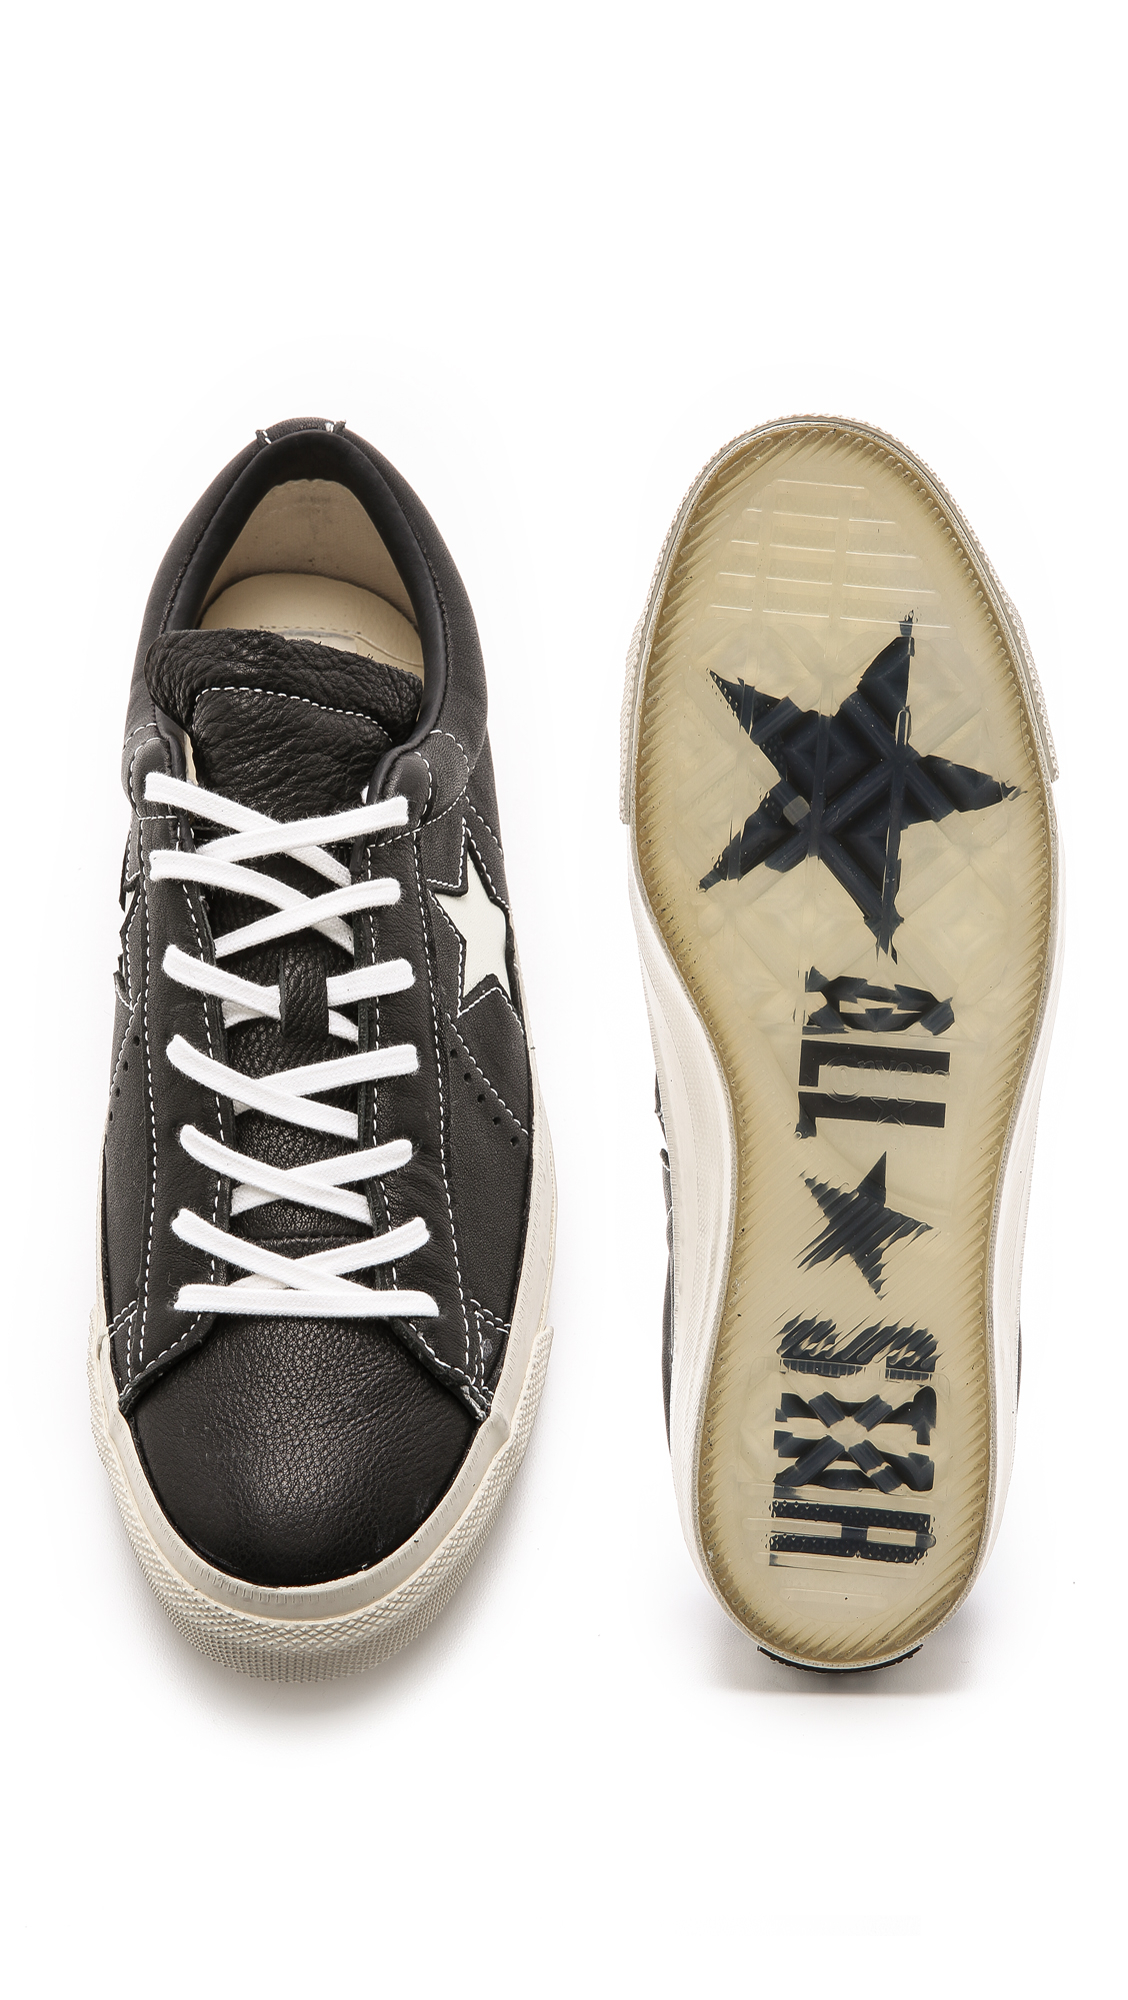 4dd93bcc5aee Previously sold at East Dane · Mens John Varvatos Converse